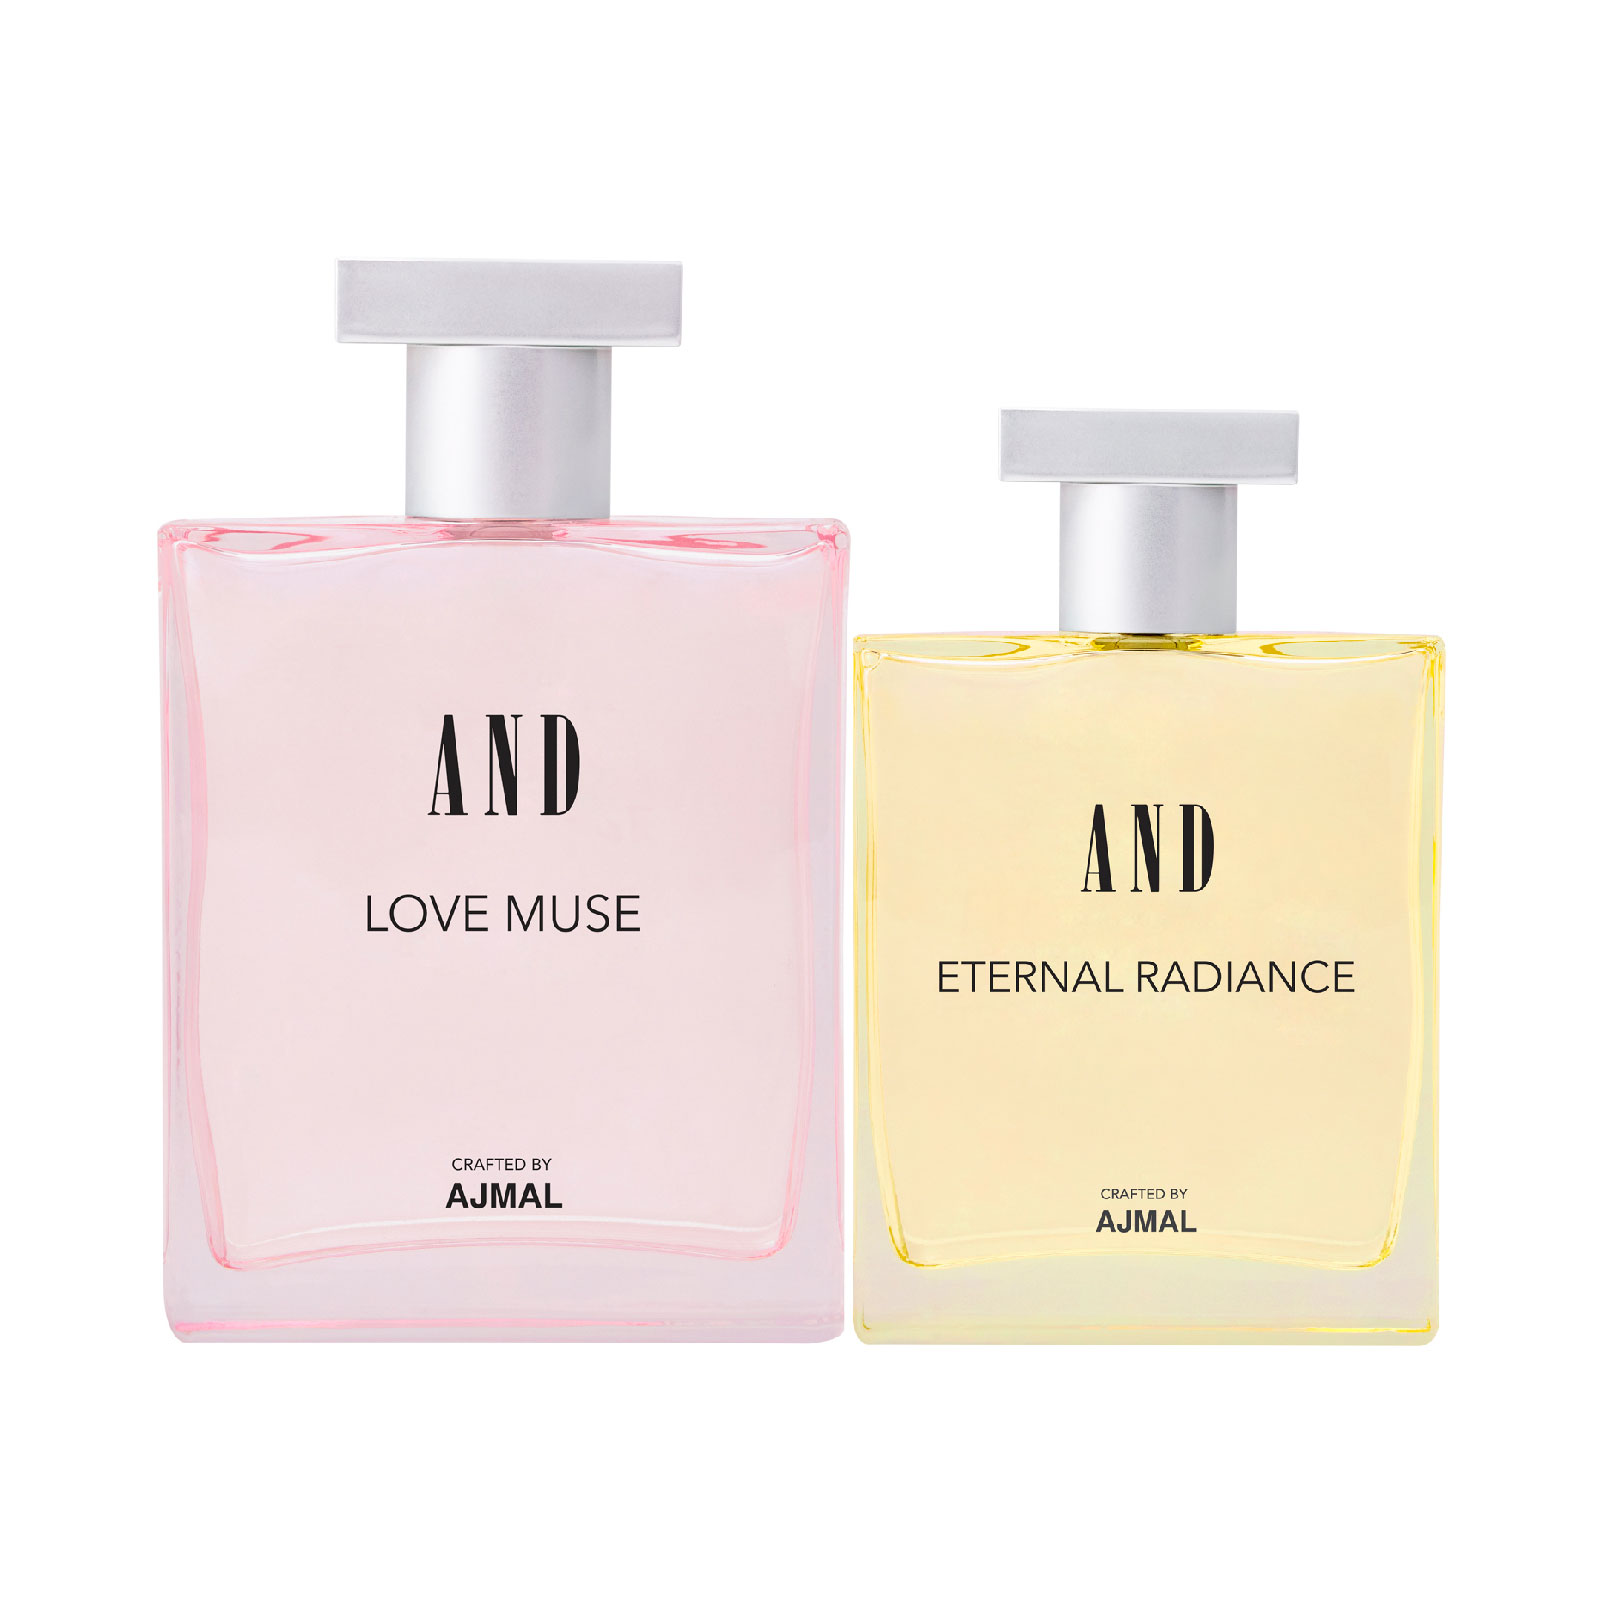 AND Crafted By Ajmal | AND Eternal Radiance 100ML & Love Muse 50ML Pack of 2 Eau De Parfum for Women Crafted by Ajmal + 2 Parfum Testers